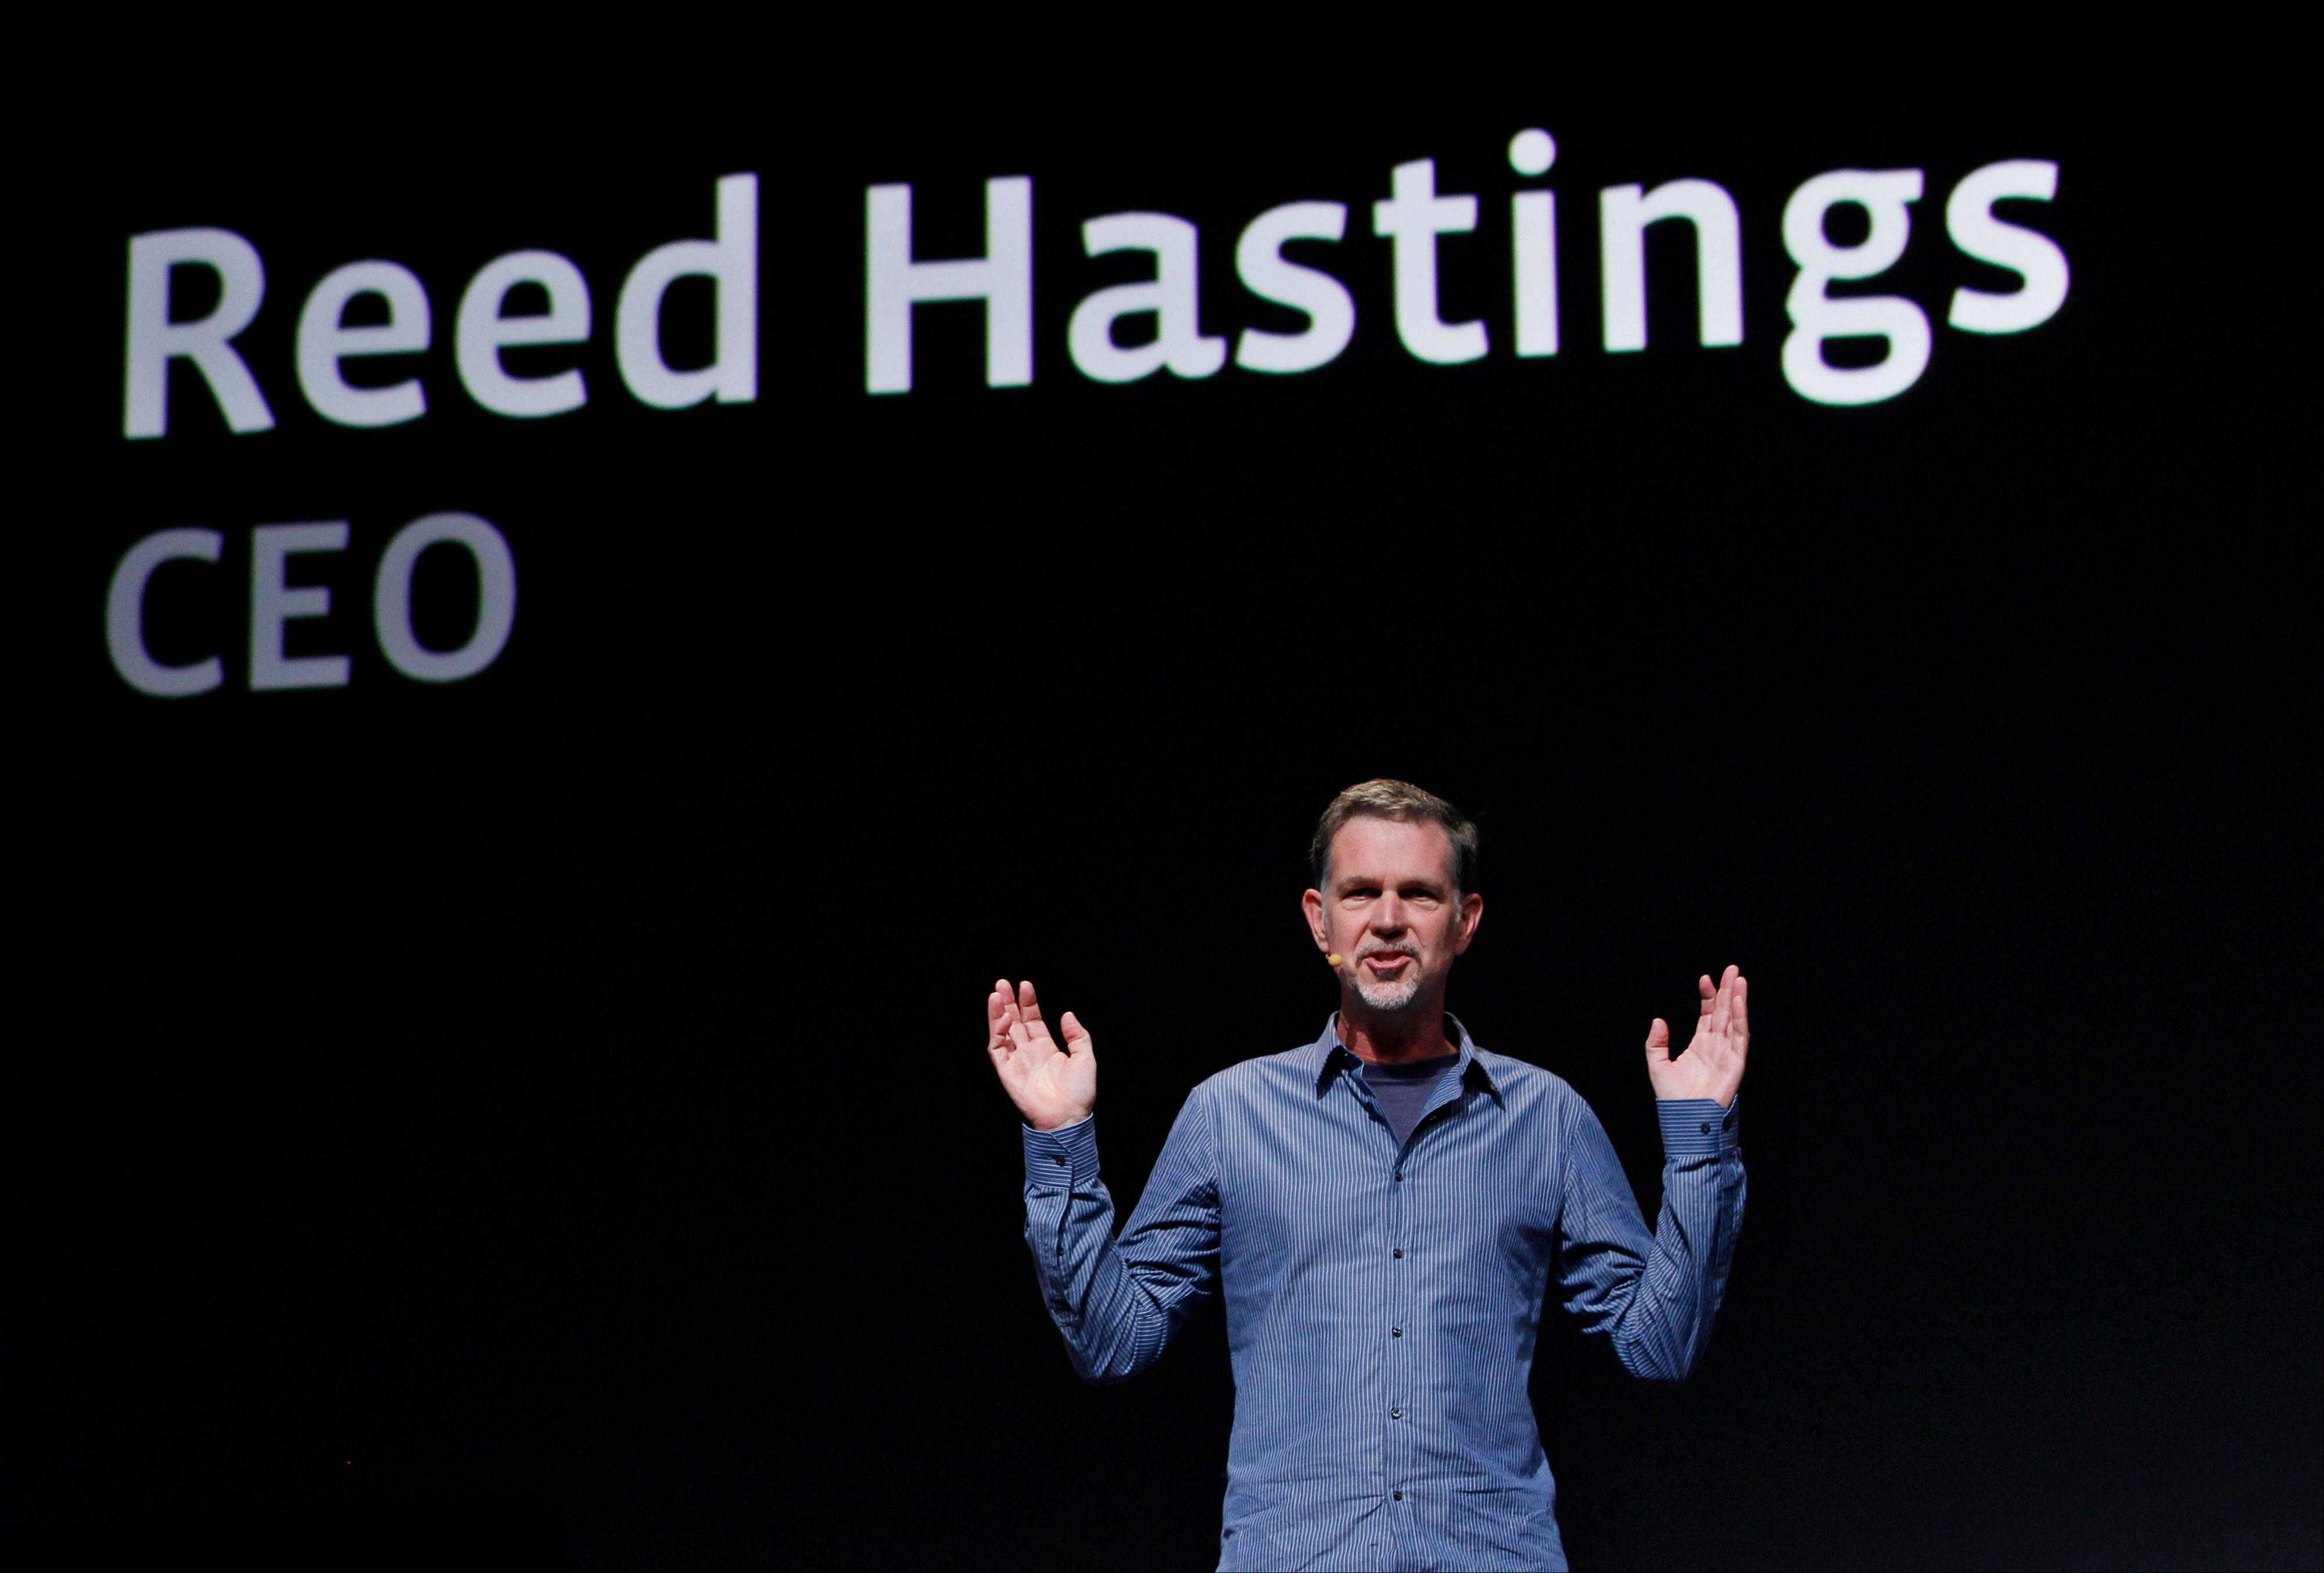 In this Sept. 22, 2011 file photo, Netflix CEO Reed Hastings gestures during the Facebook f/8 conference in San Francisco. He will host a video chat discussing the company�s quarterly results on July 22, 2013.